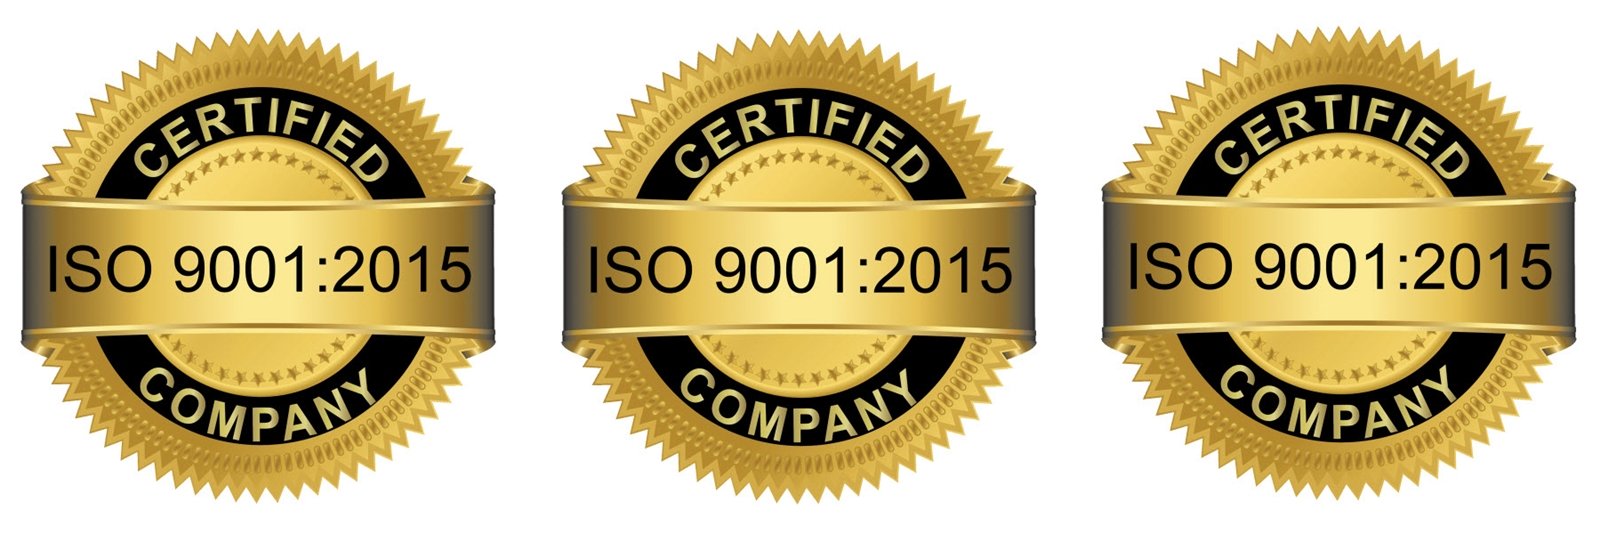 The Management Systerm is ISO 9001:2015 Certified